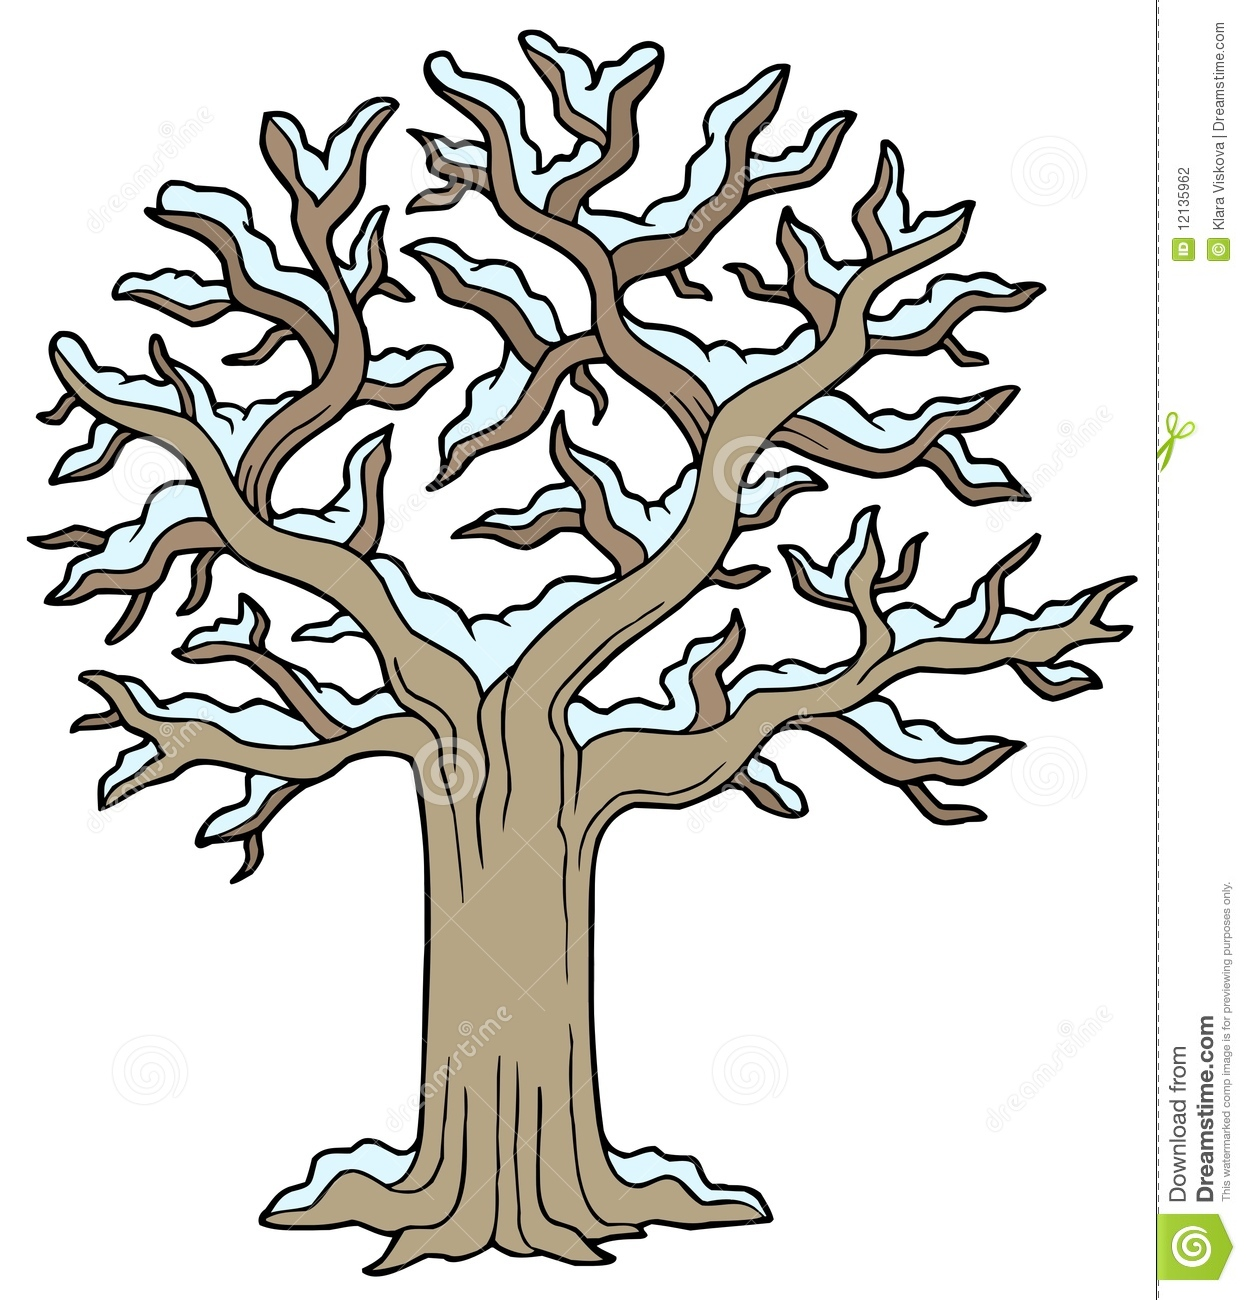 Winter trees clipart 5 » Clipart Station.